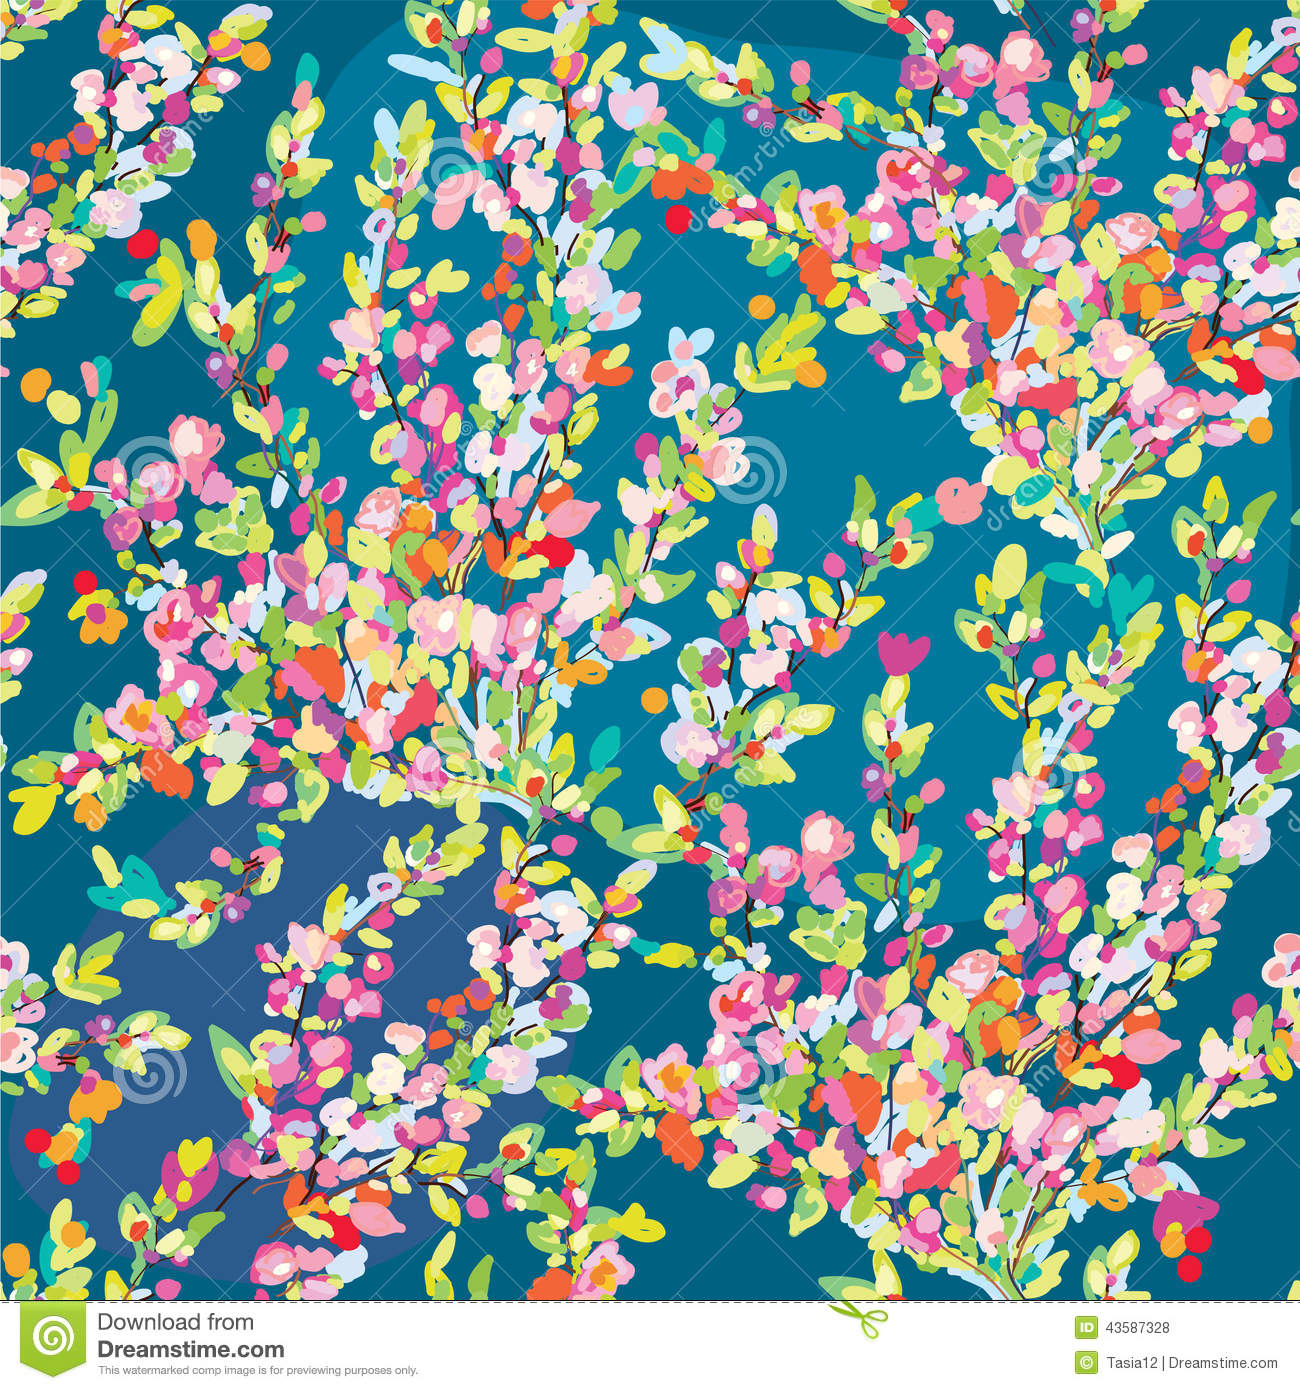 Floral seamless pattern with hand drawn blossom flowers for spring